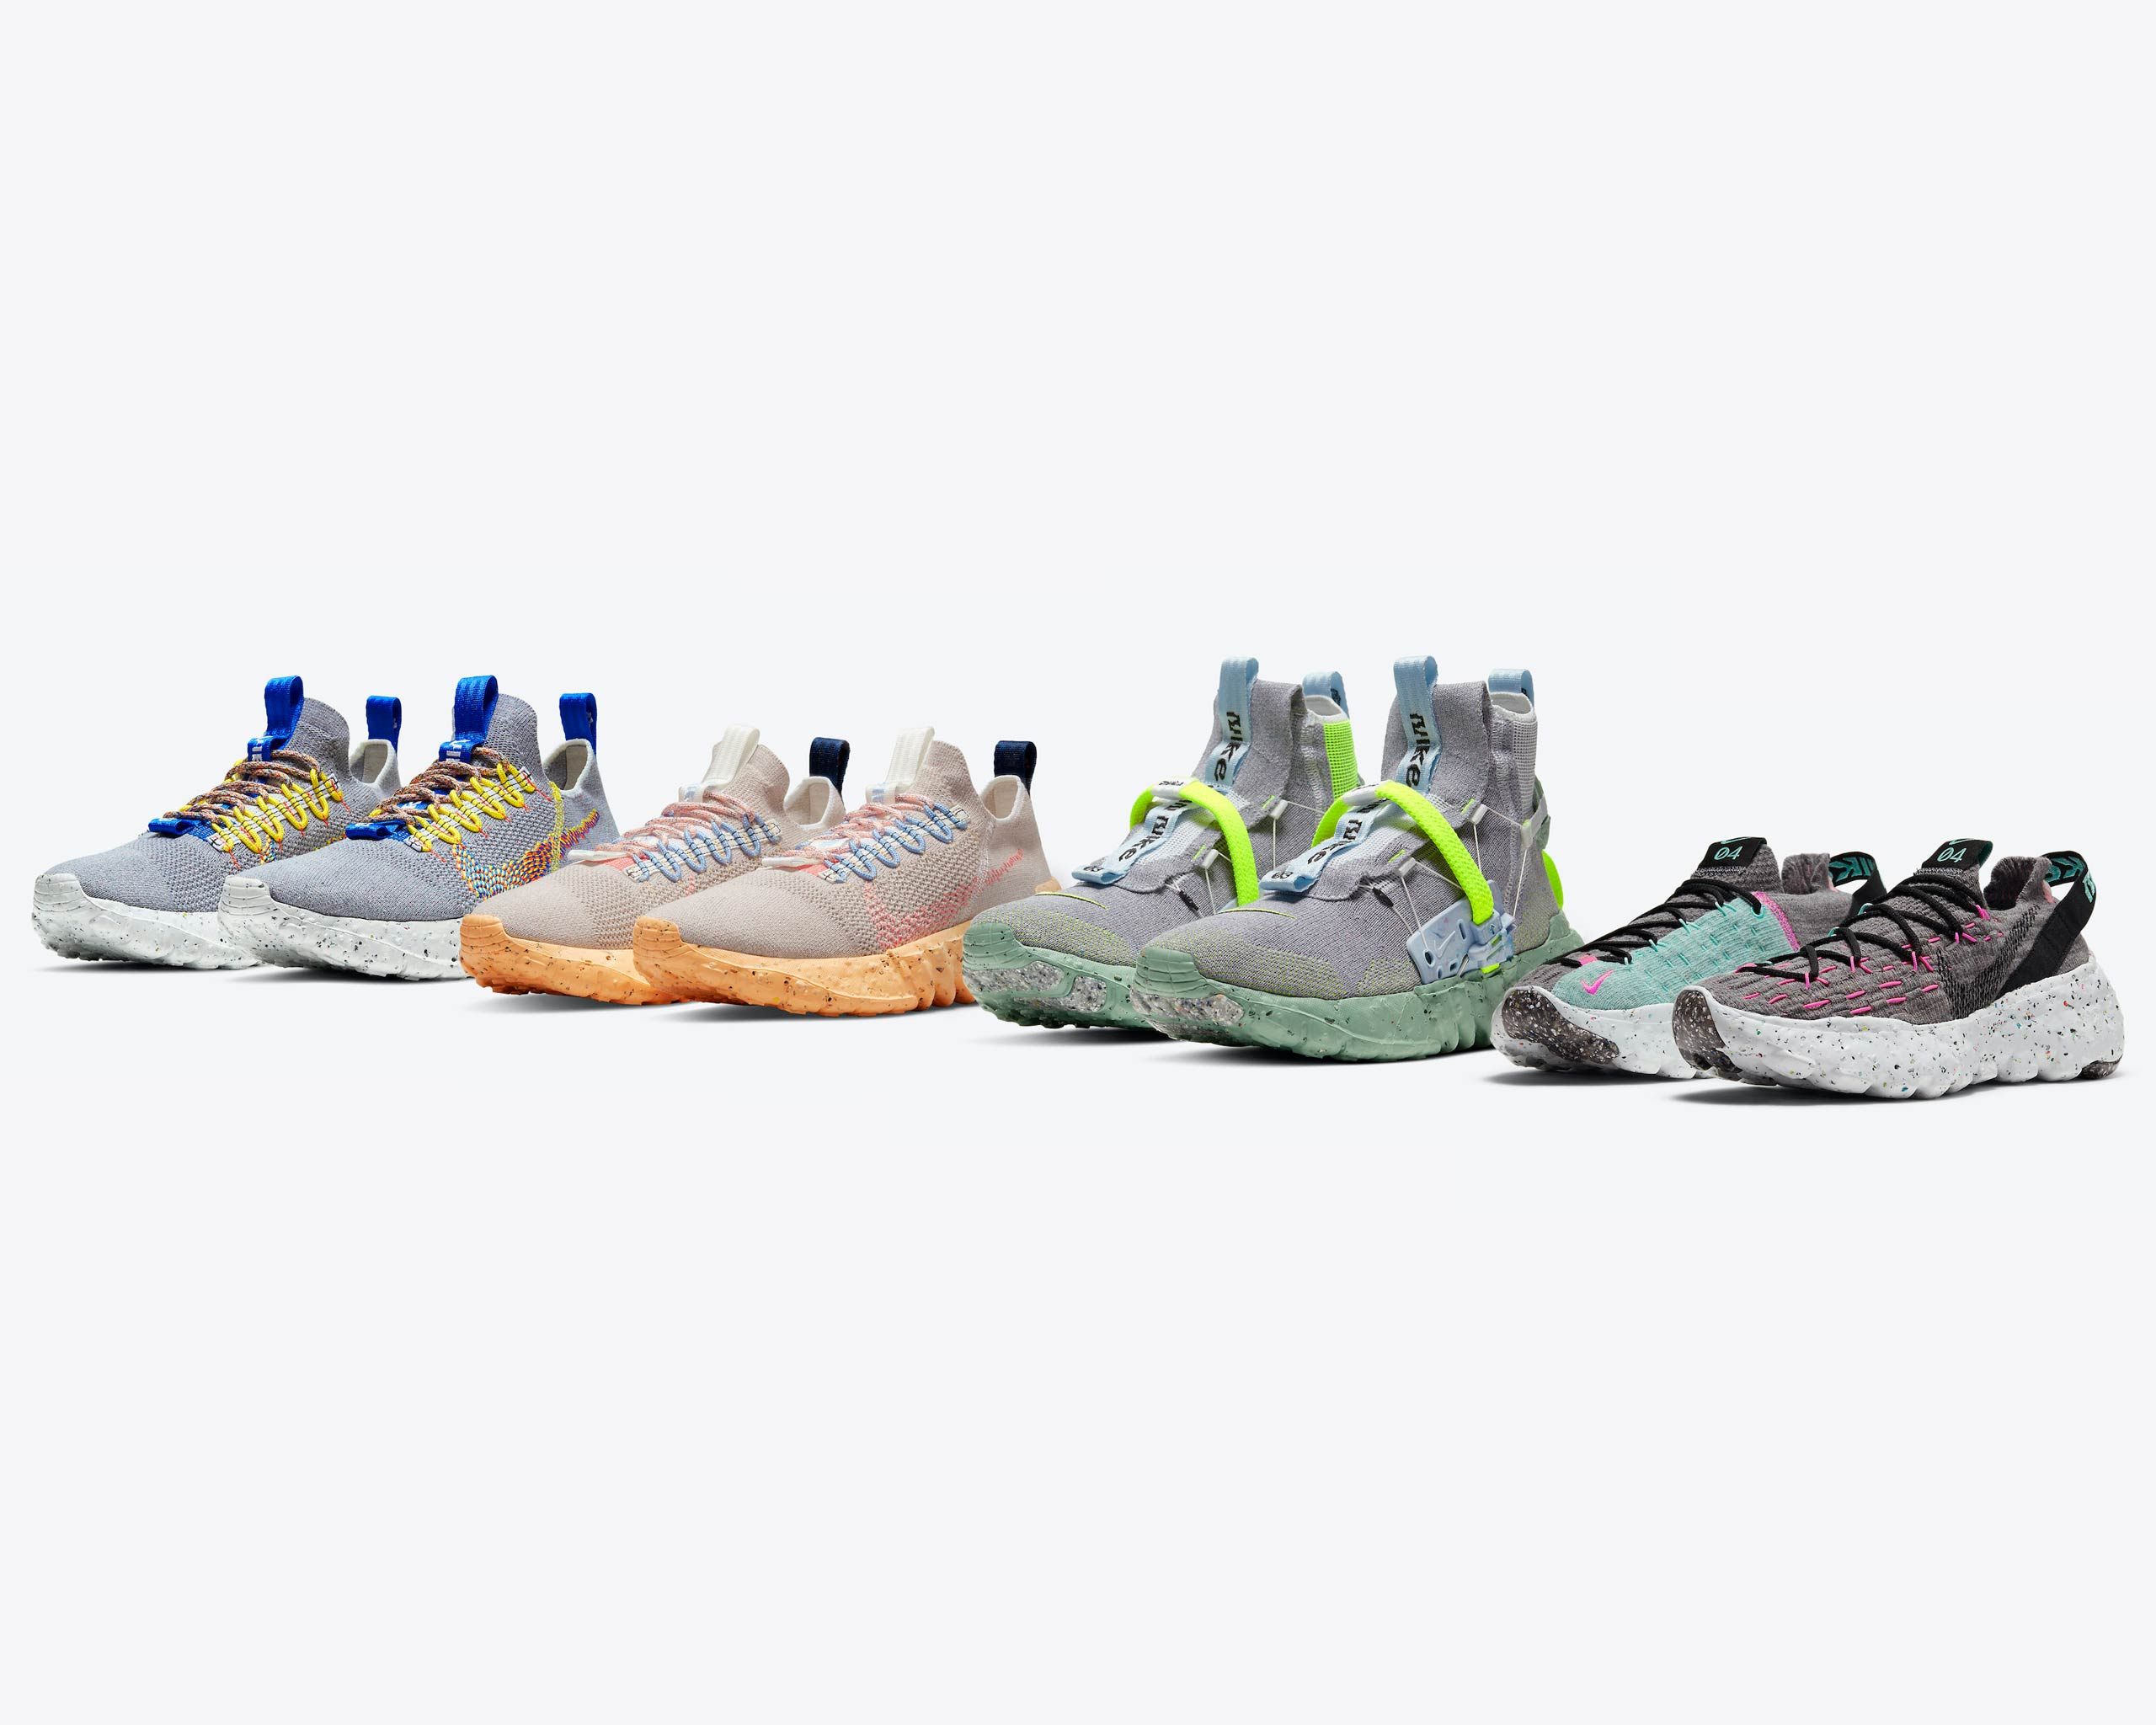 Nike Space Hippie - the vegan, recycled sneaker made with floor scraps, in new colorways - Antagonist